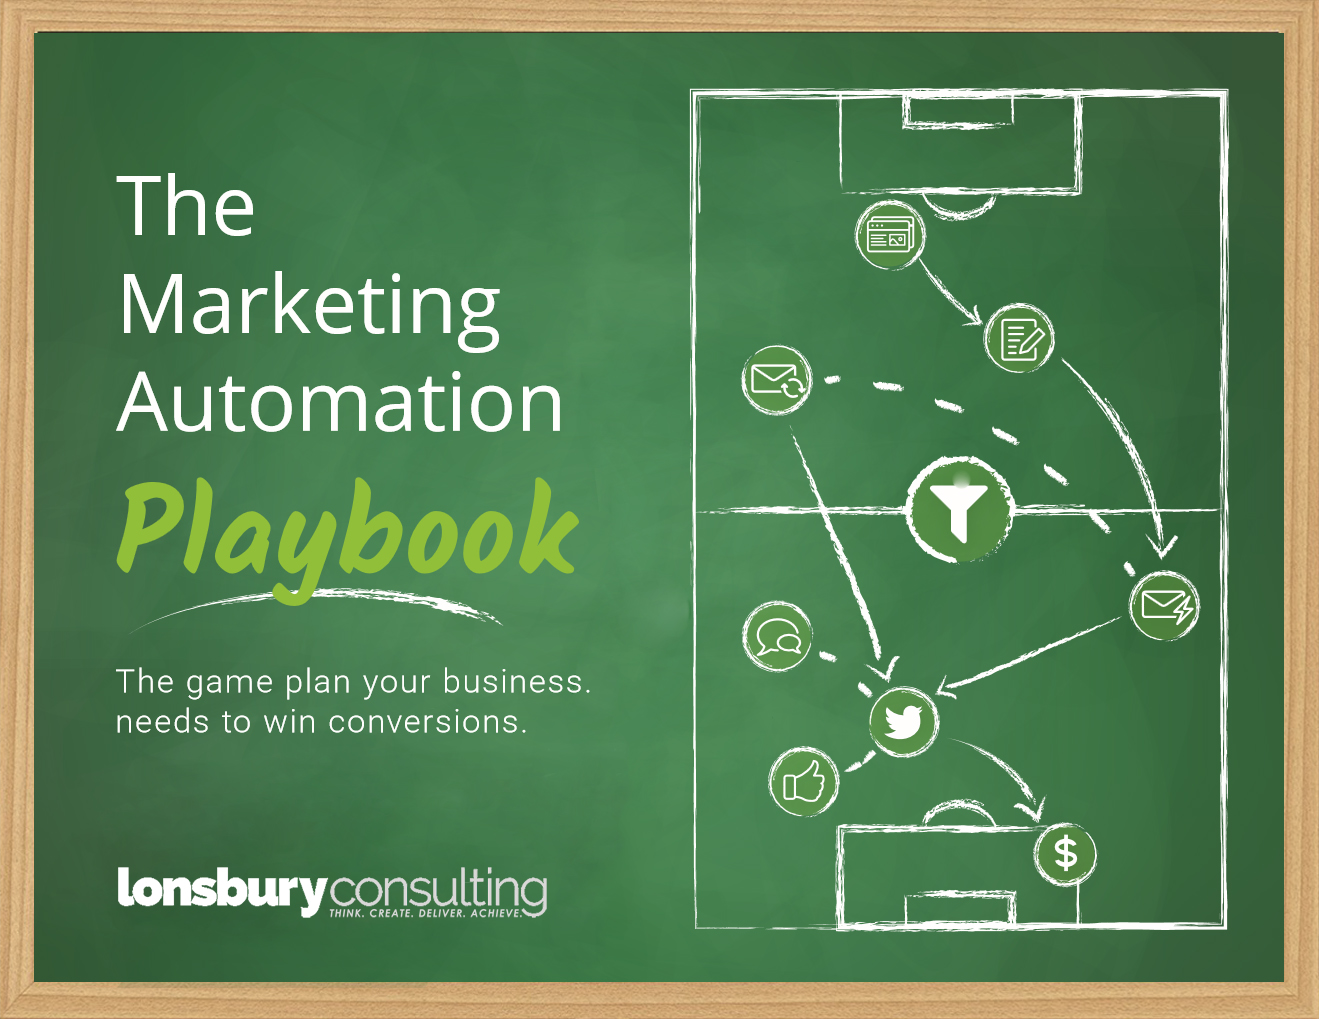 The Marketing Automation Playbook cover